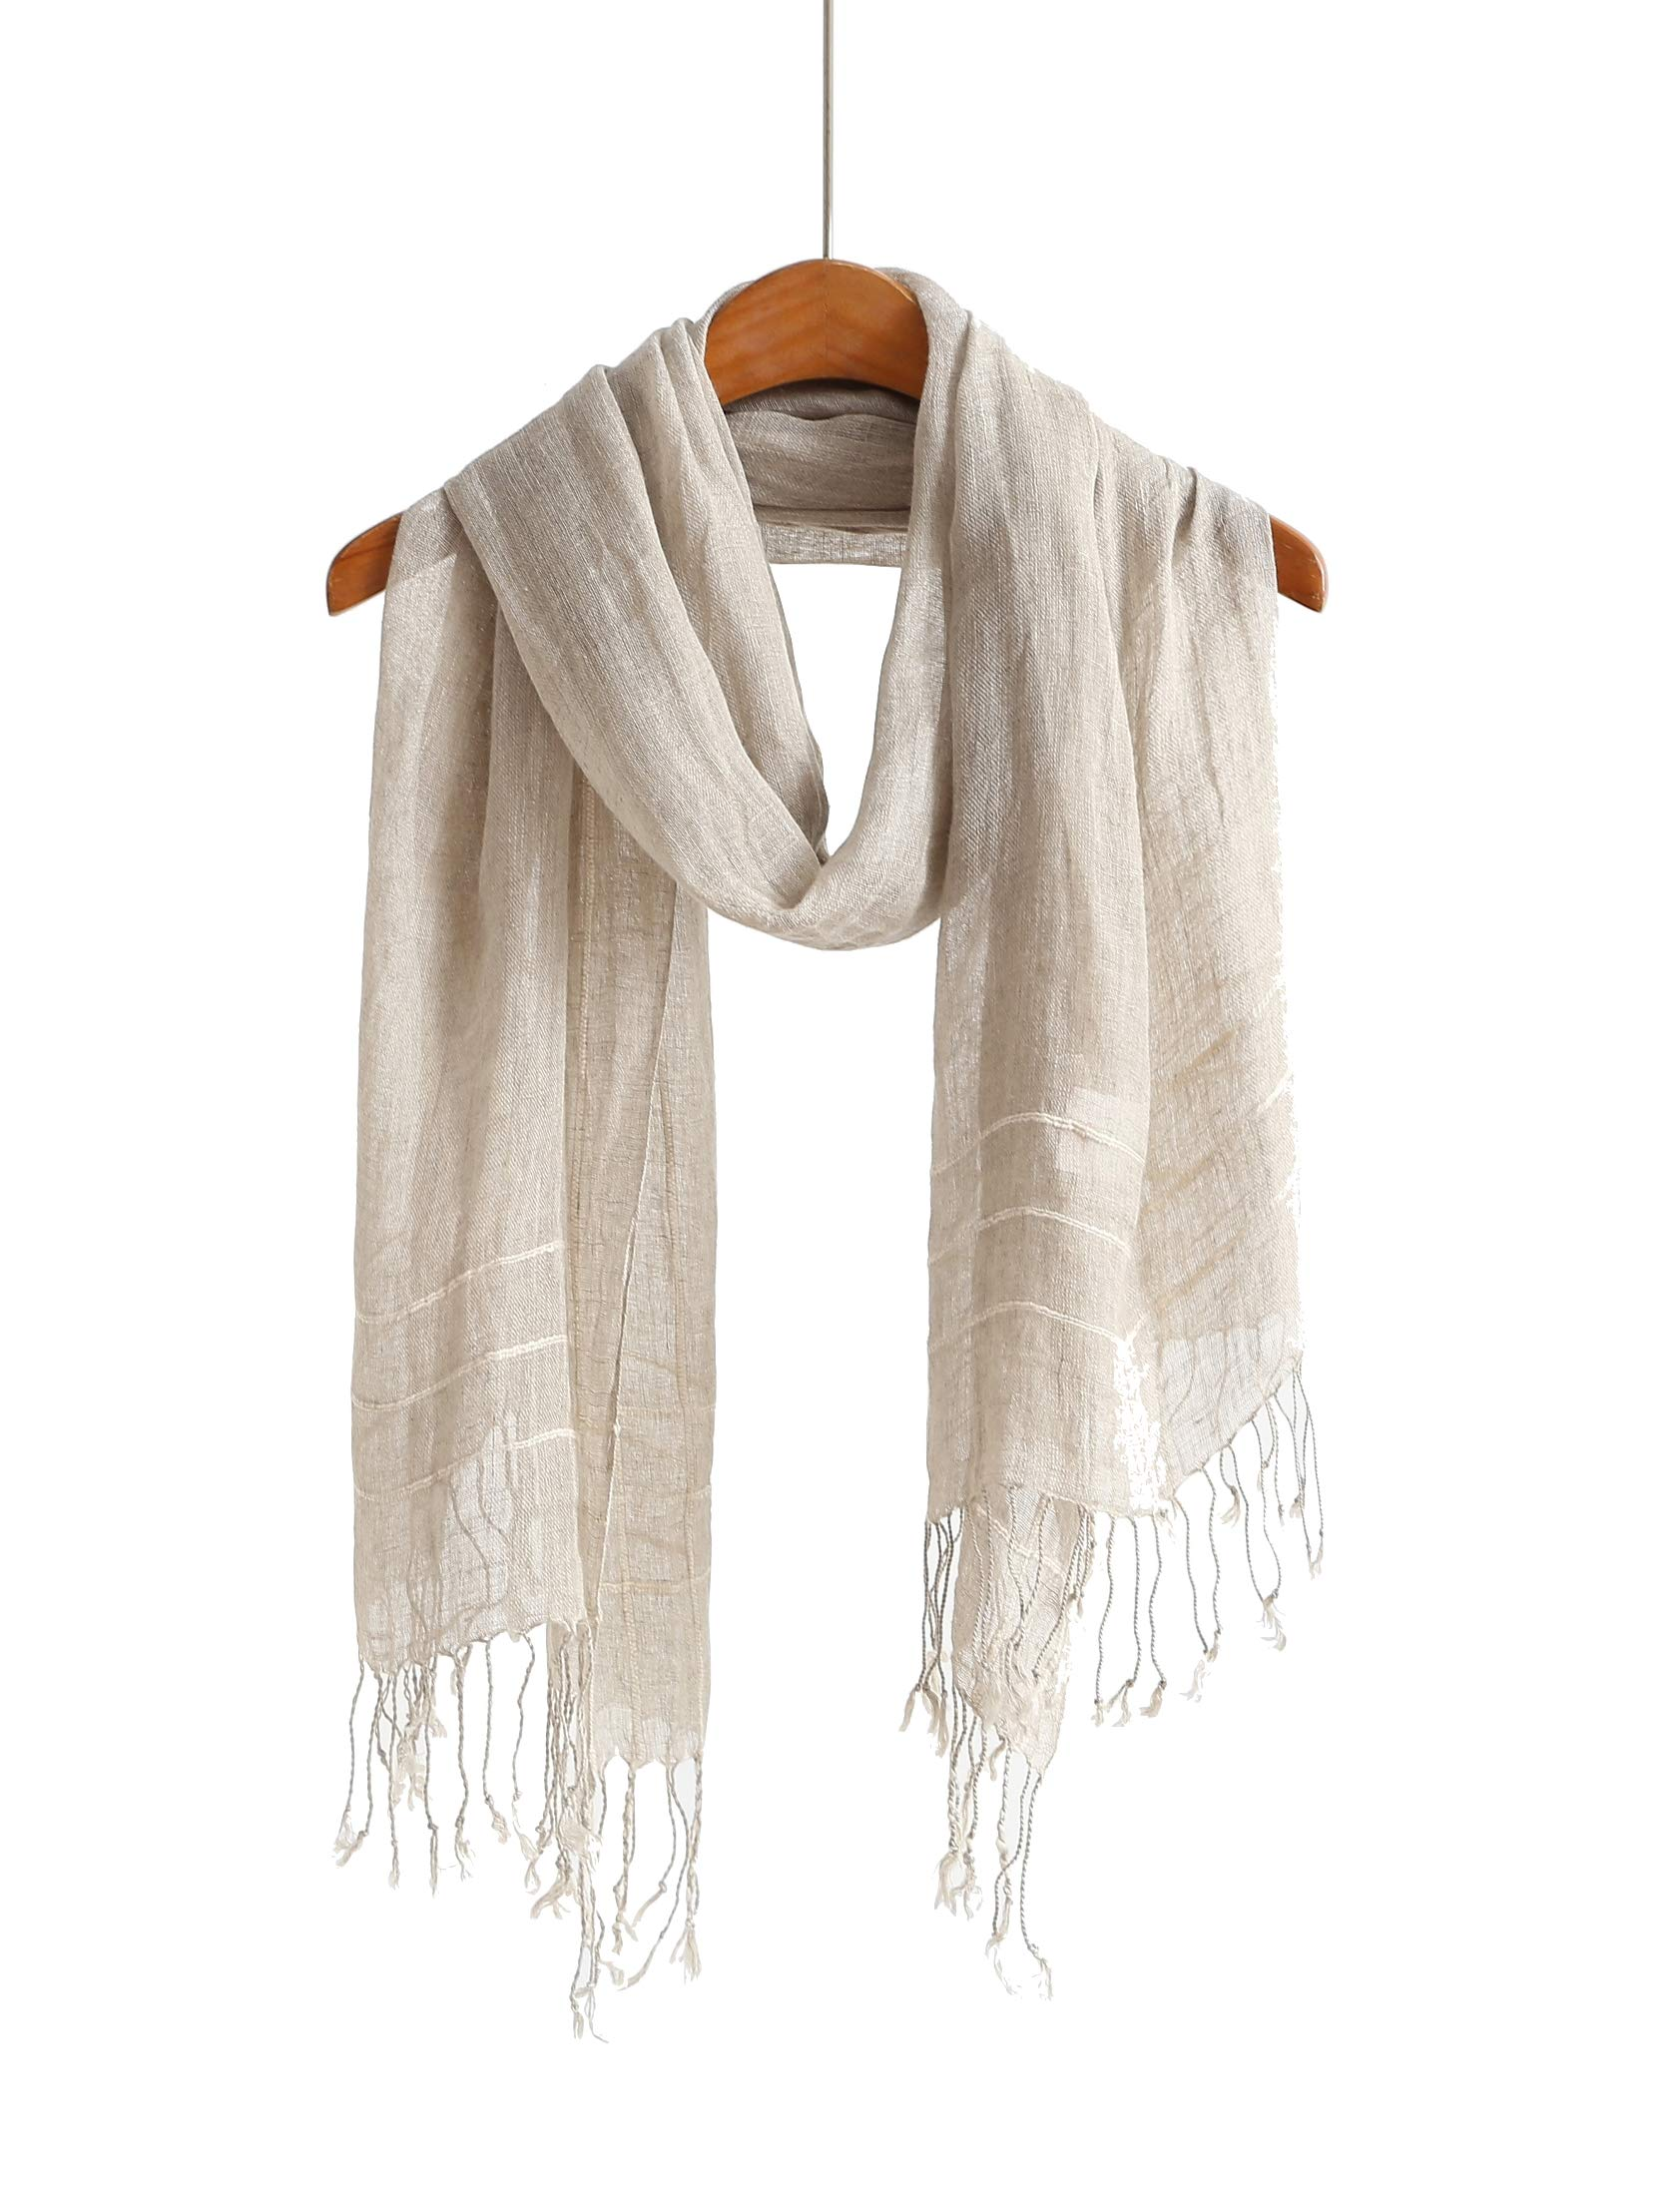 Lightweight Cotton Scarf Scarfs For Women Shawls And Wraps Scarves For Men (Linen Stripe) by Jeelow